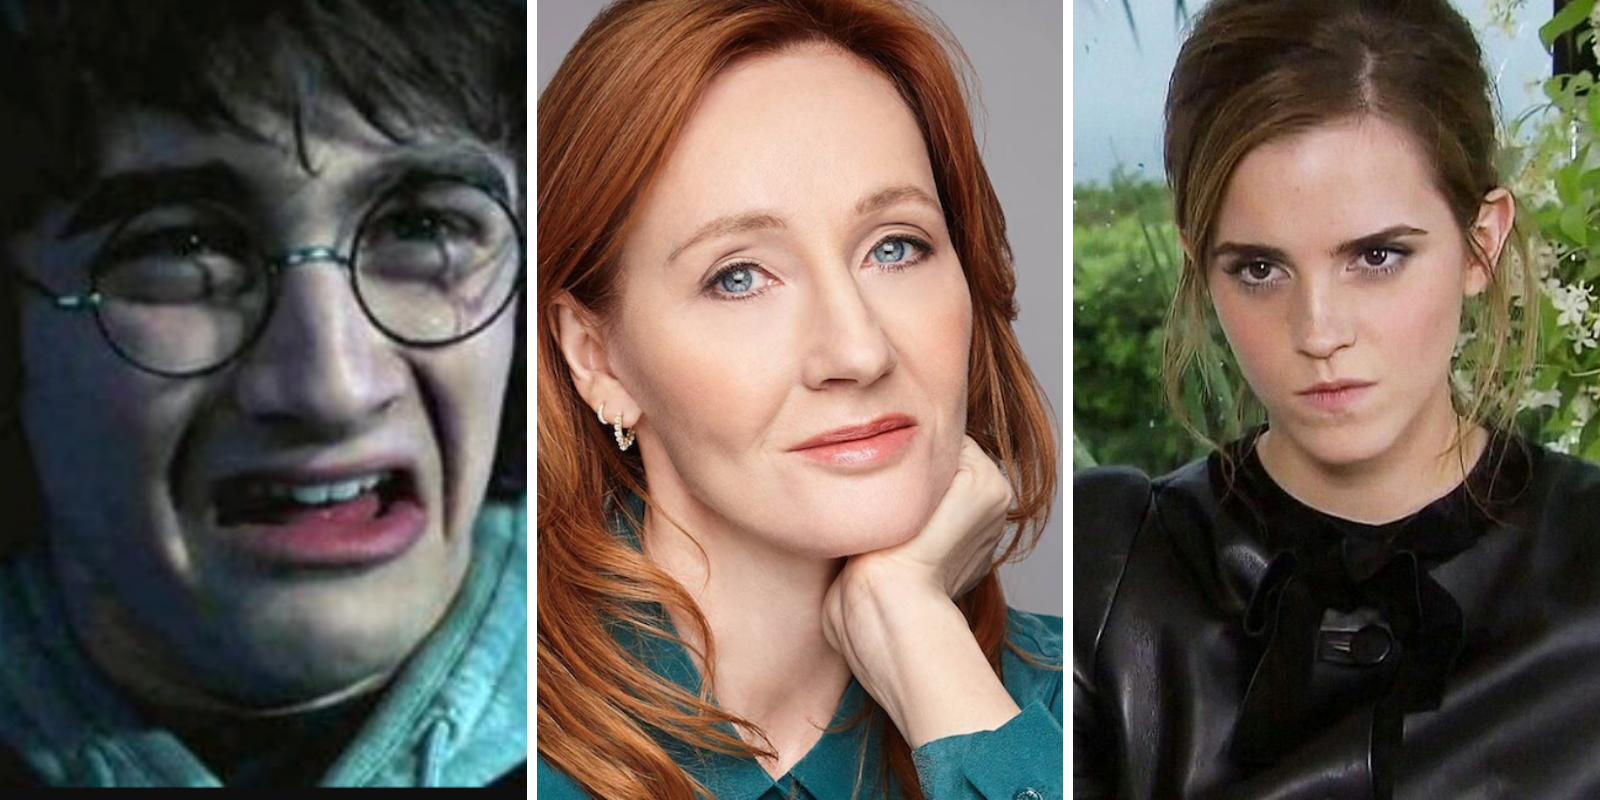 Trans people agree with JK Rowling while 'woke allies' perform their outrage